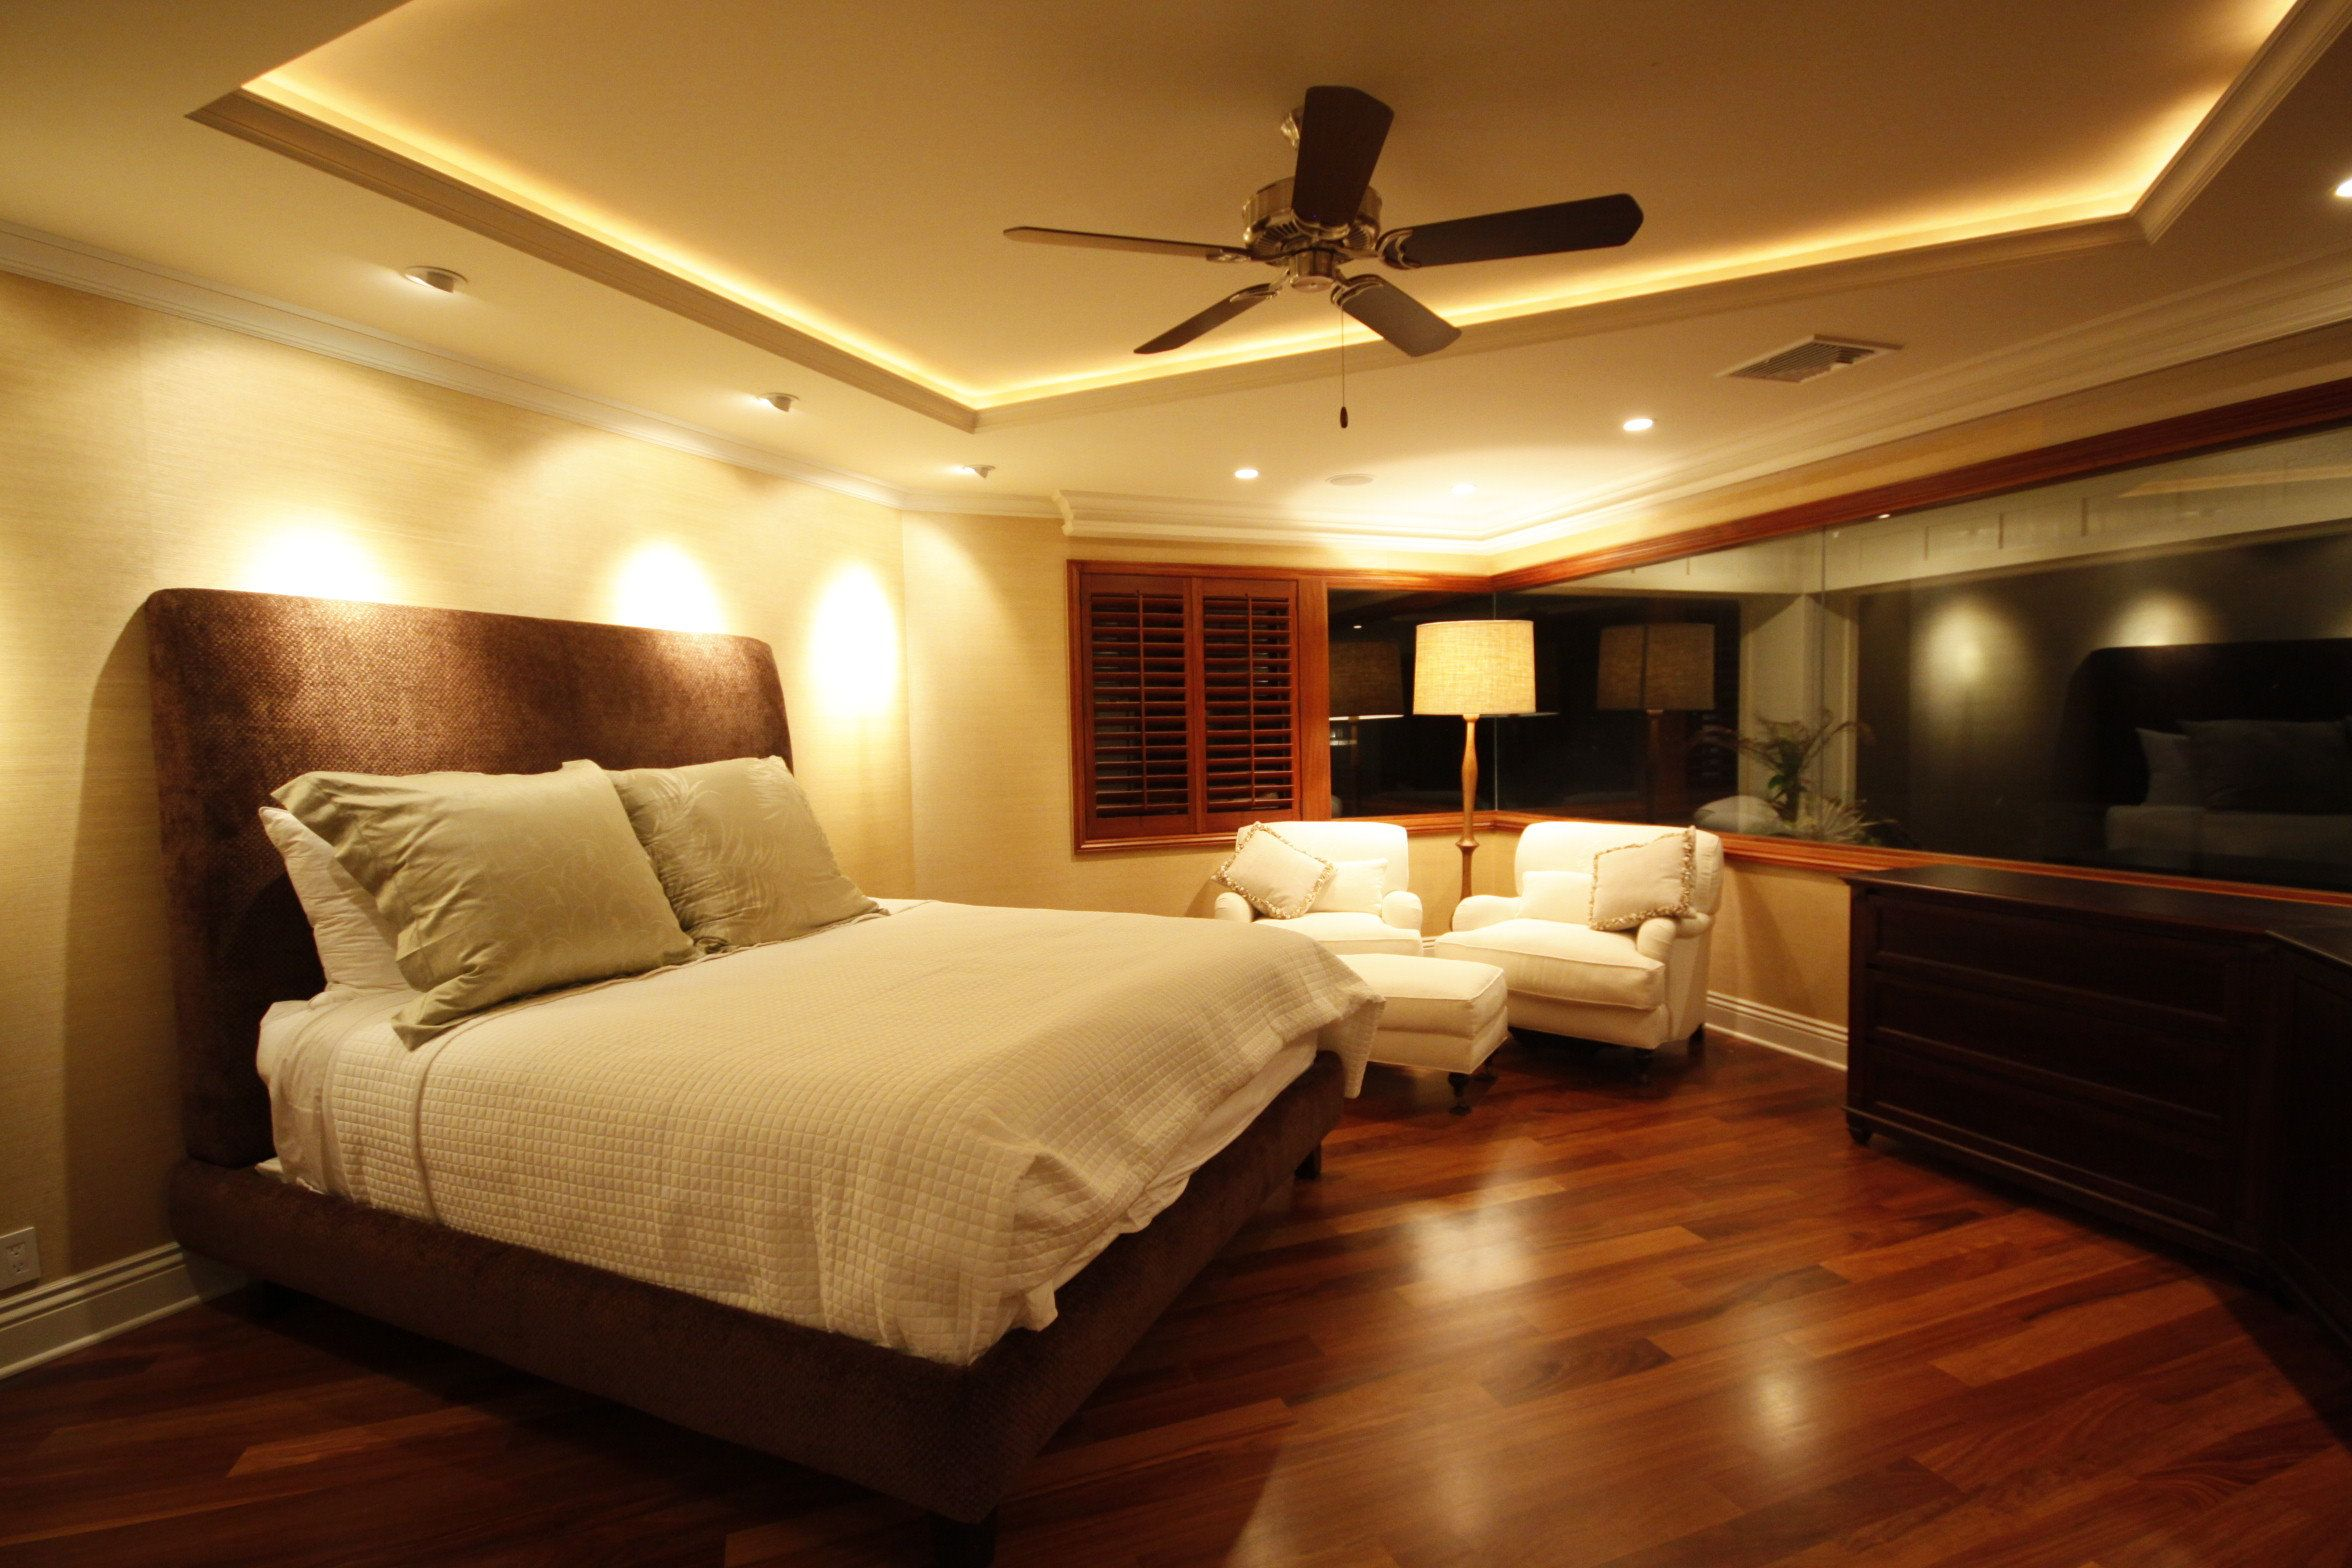 Appealing master bedroom modern decor with wooden floors for Bedroom ideas luxury